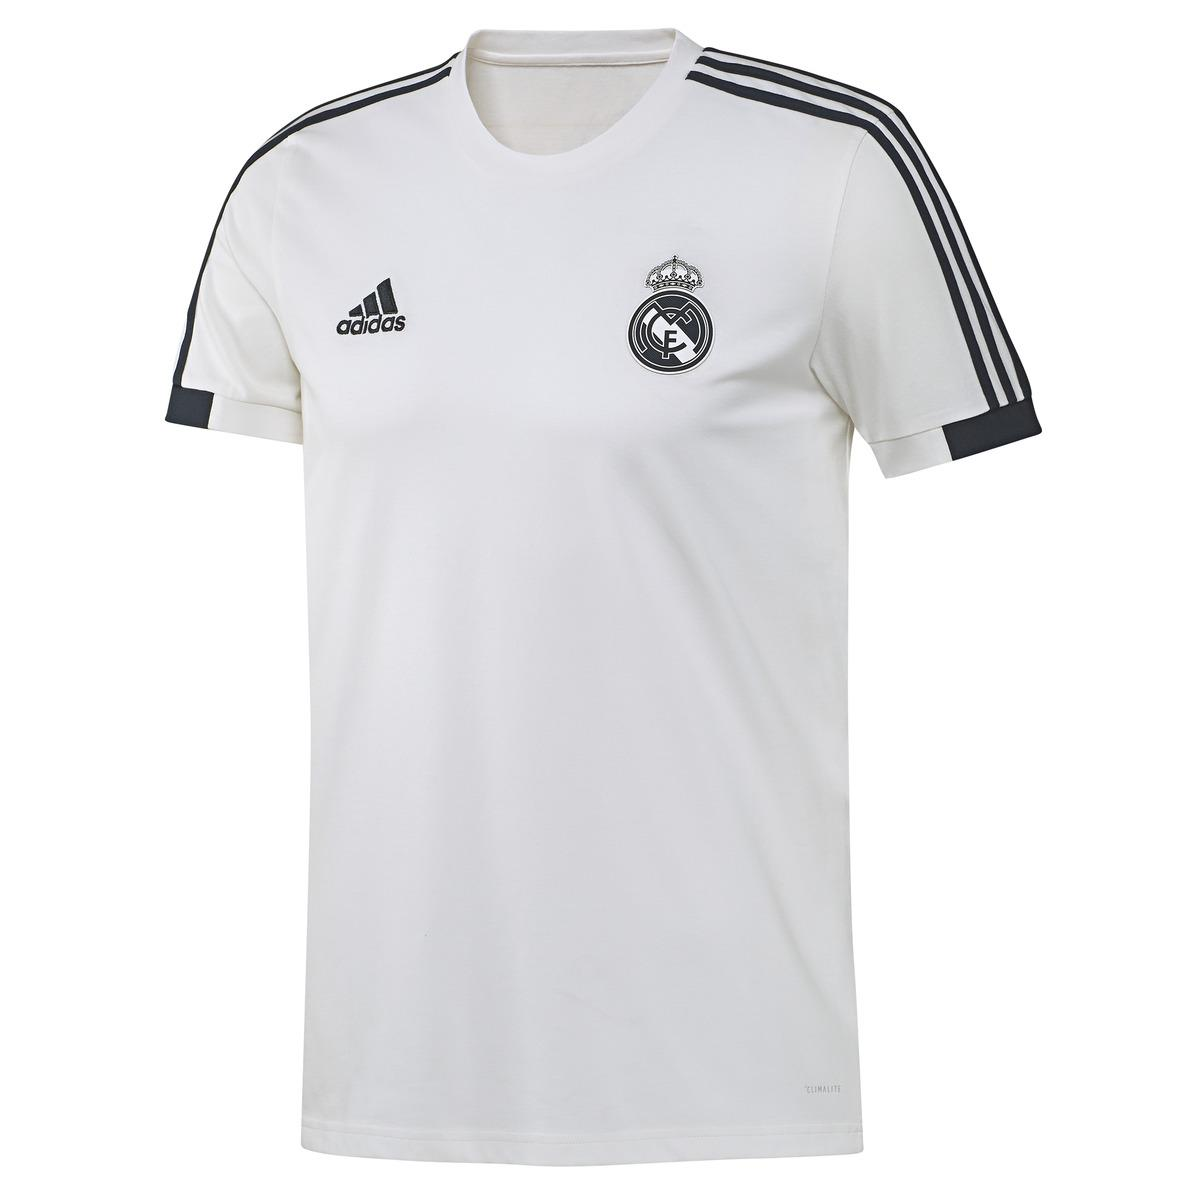 d2b7f89d adidas. Men's White Real Madrid Cf 2018-2019 T-shirt. £31 From El Corte  Ingles